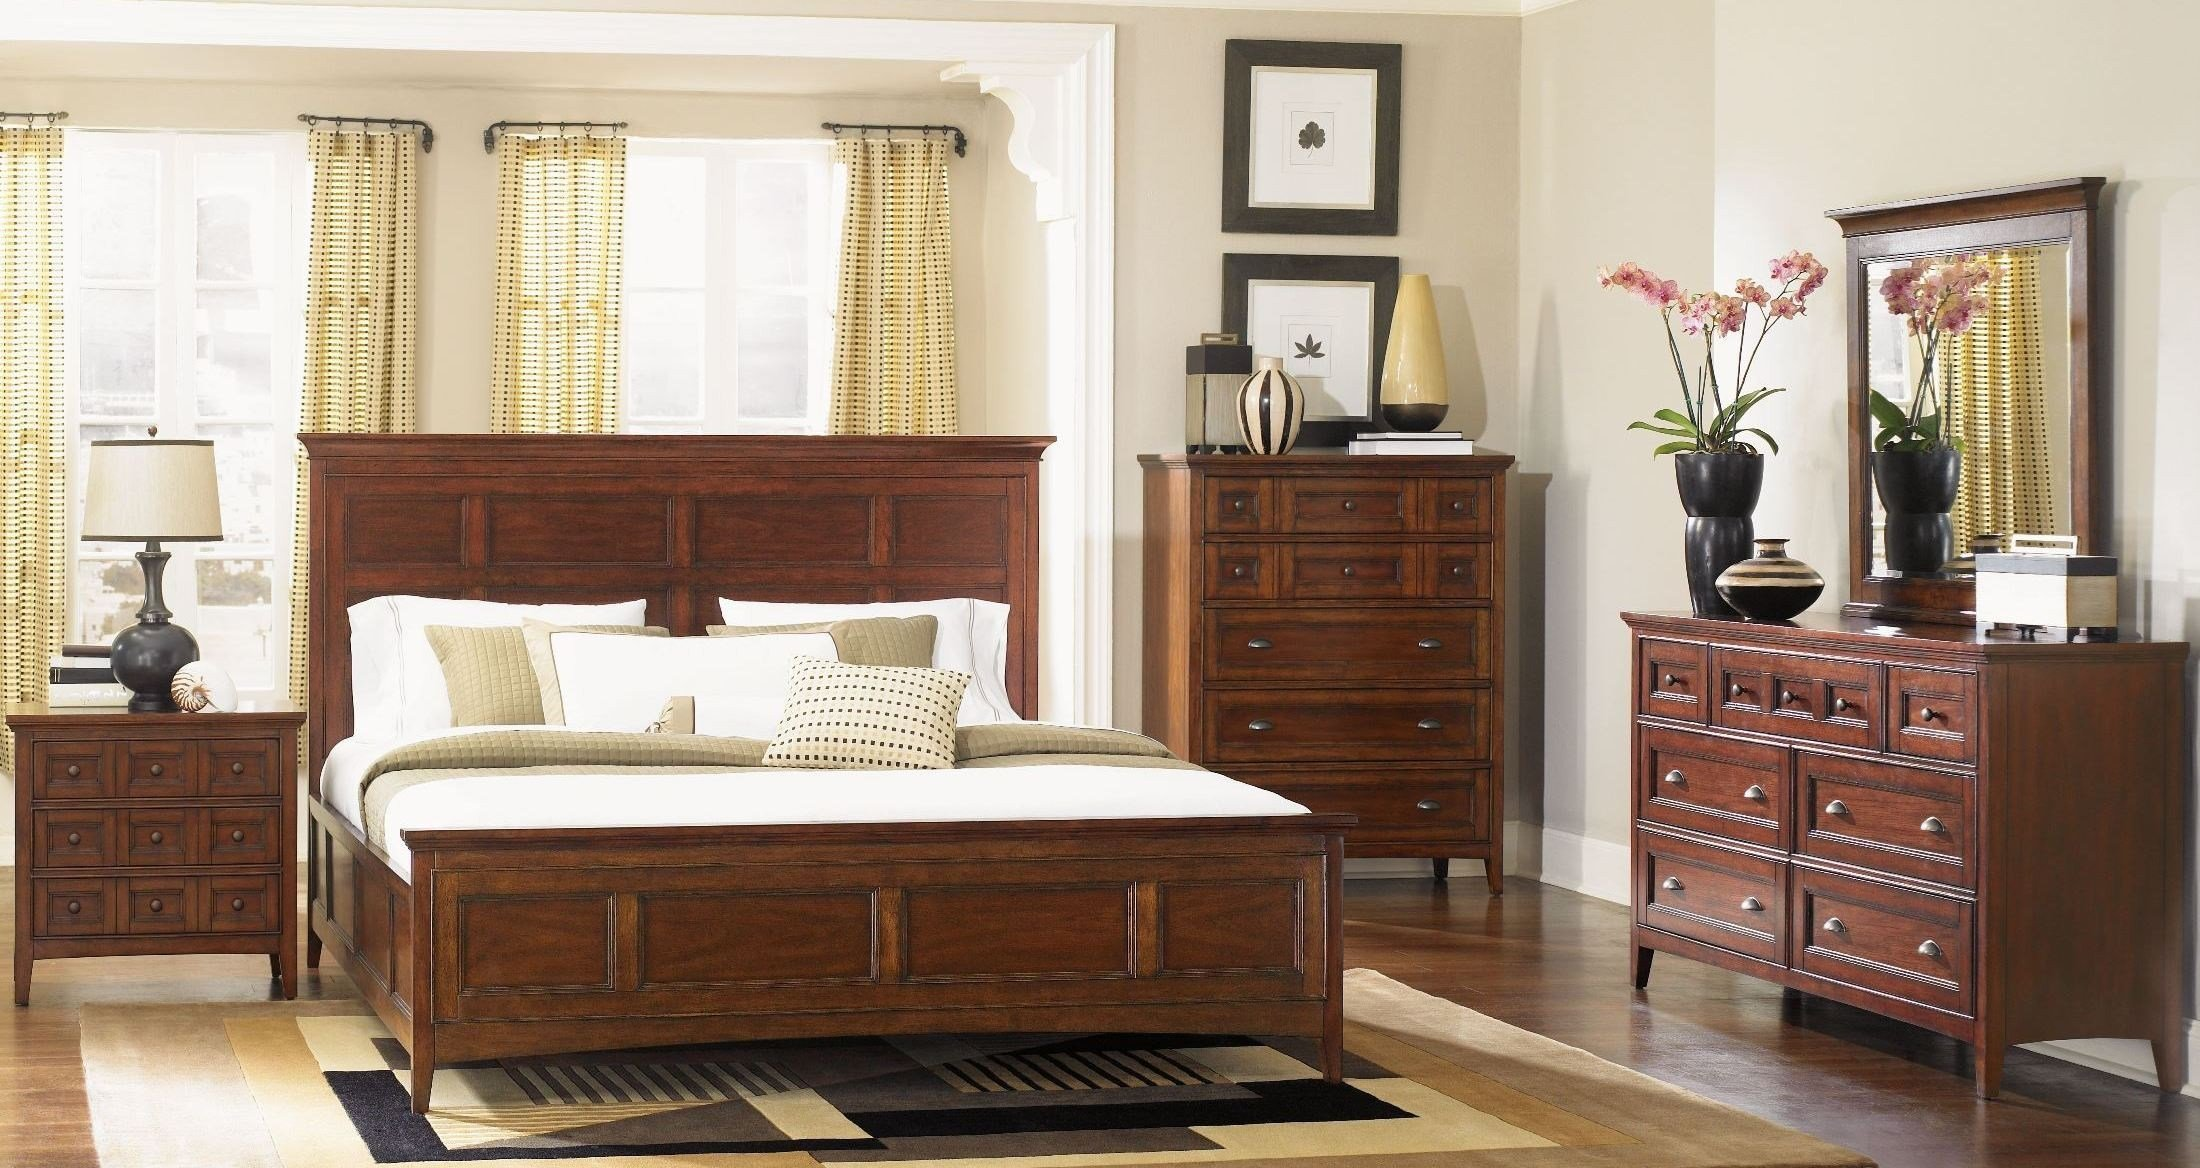 Best Harrison Panel Bedroom Set From Magnussen Home B1398 54H With Pictures